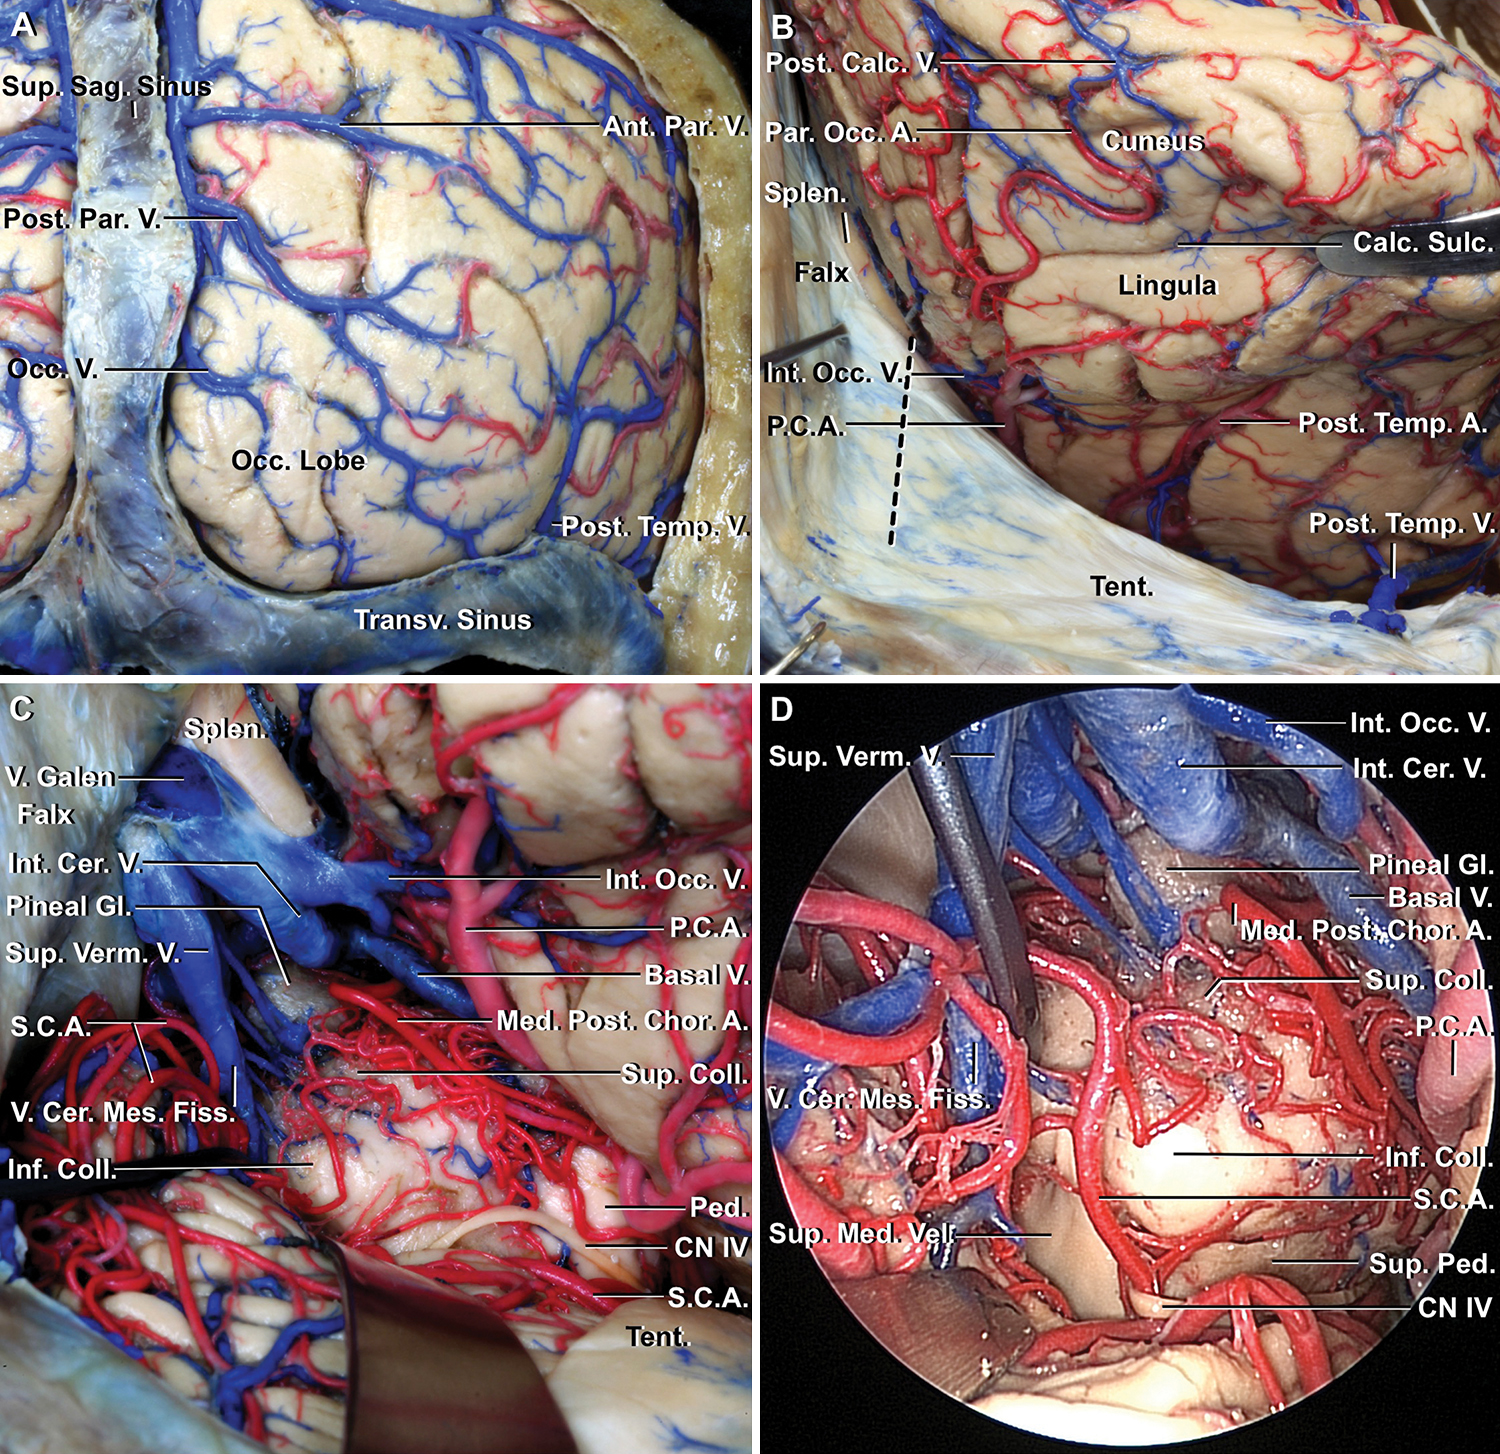 Prevention Of Postoperative Visual Field Defect After The Occipital Open Electrical Panels Are Dangerous C Daniel Friedman Fig 2